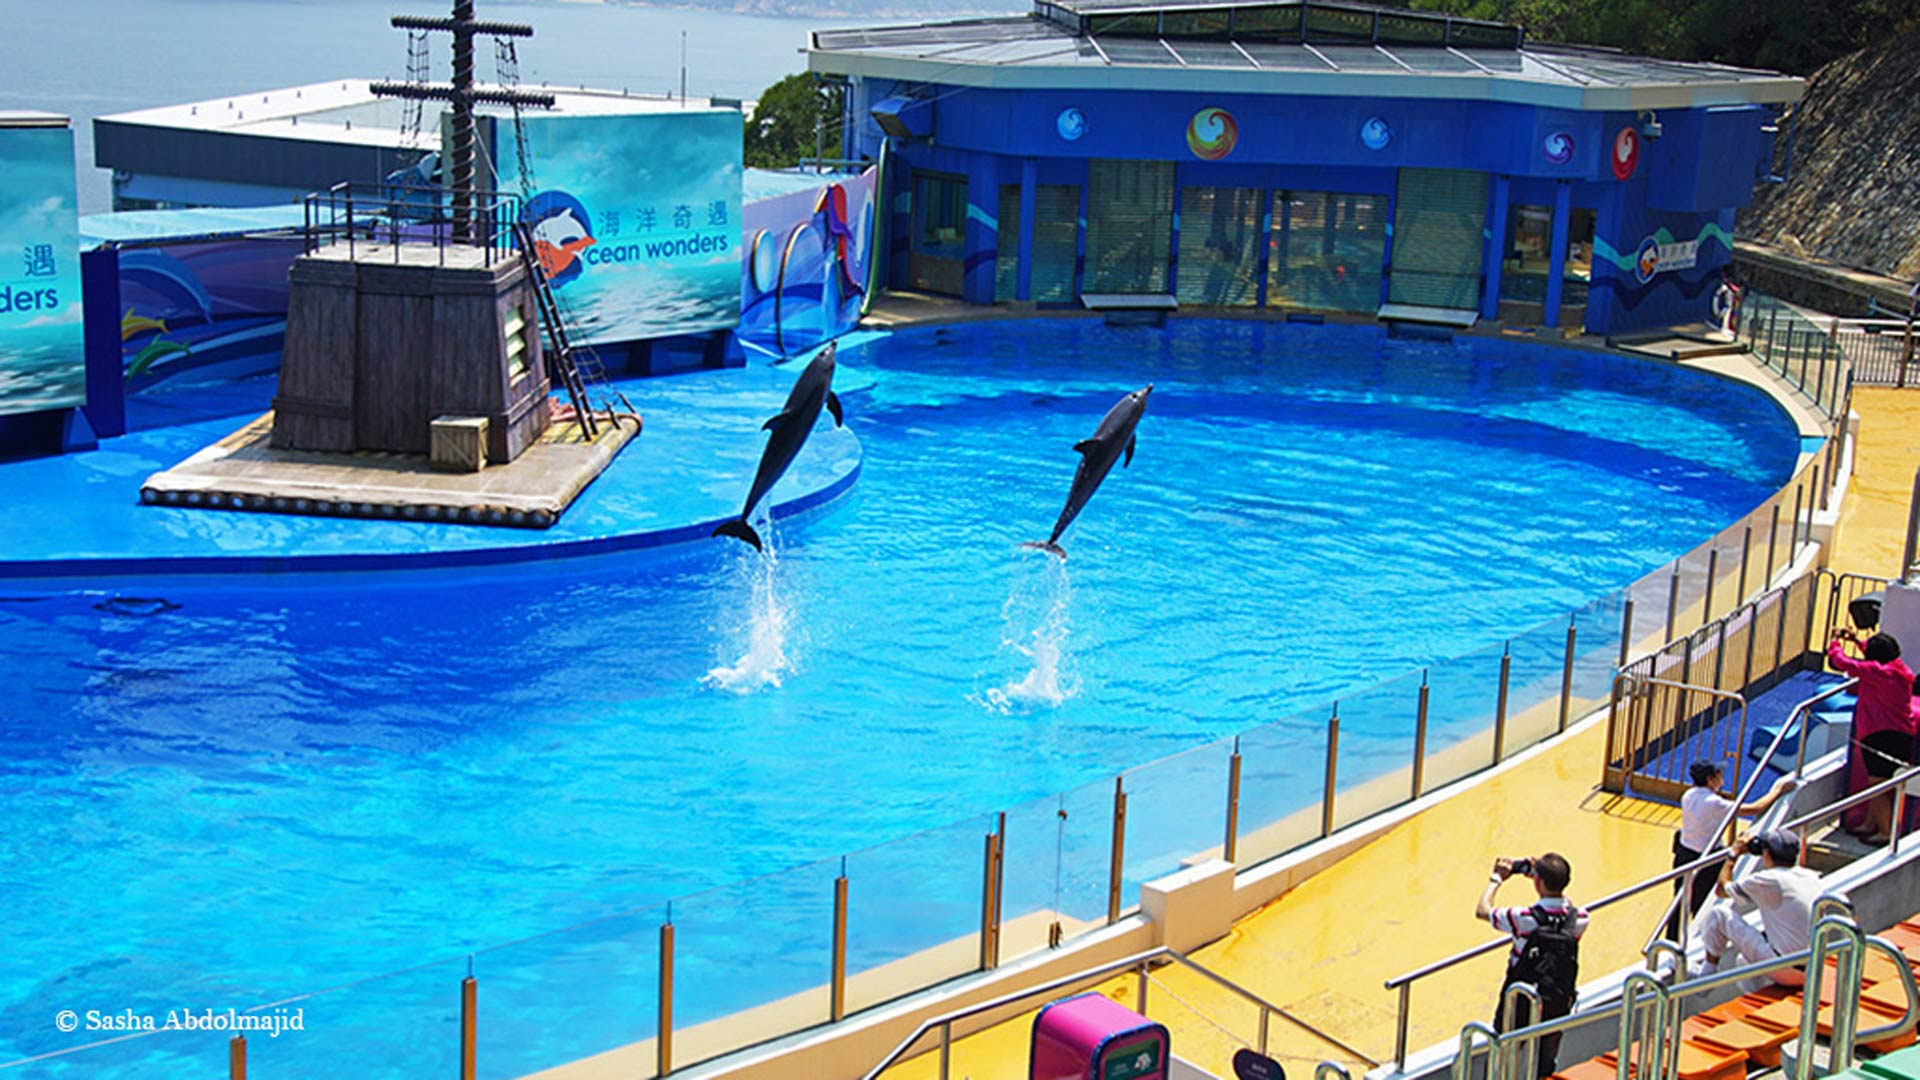 Captive dolphins performing tricks at Ocean Park Hong Kong. No tank can fulfil their natural travelling distance of up to 60 miles a day in the ocean. Photo: Sasha Abdolmajid